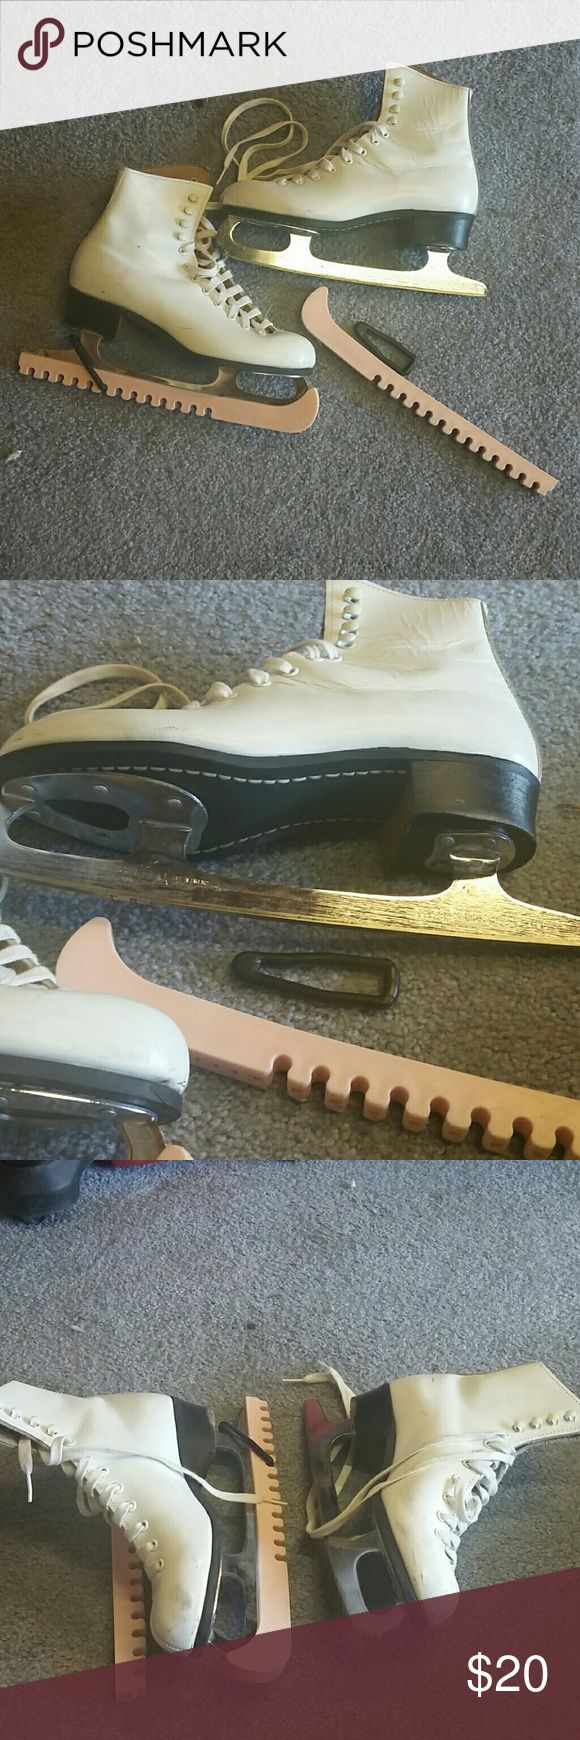 Size 5 Ice Skates White Ice Skates with blade protector and carry on case. Riedell Shoes